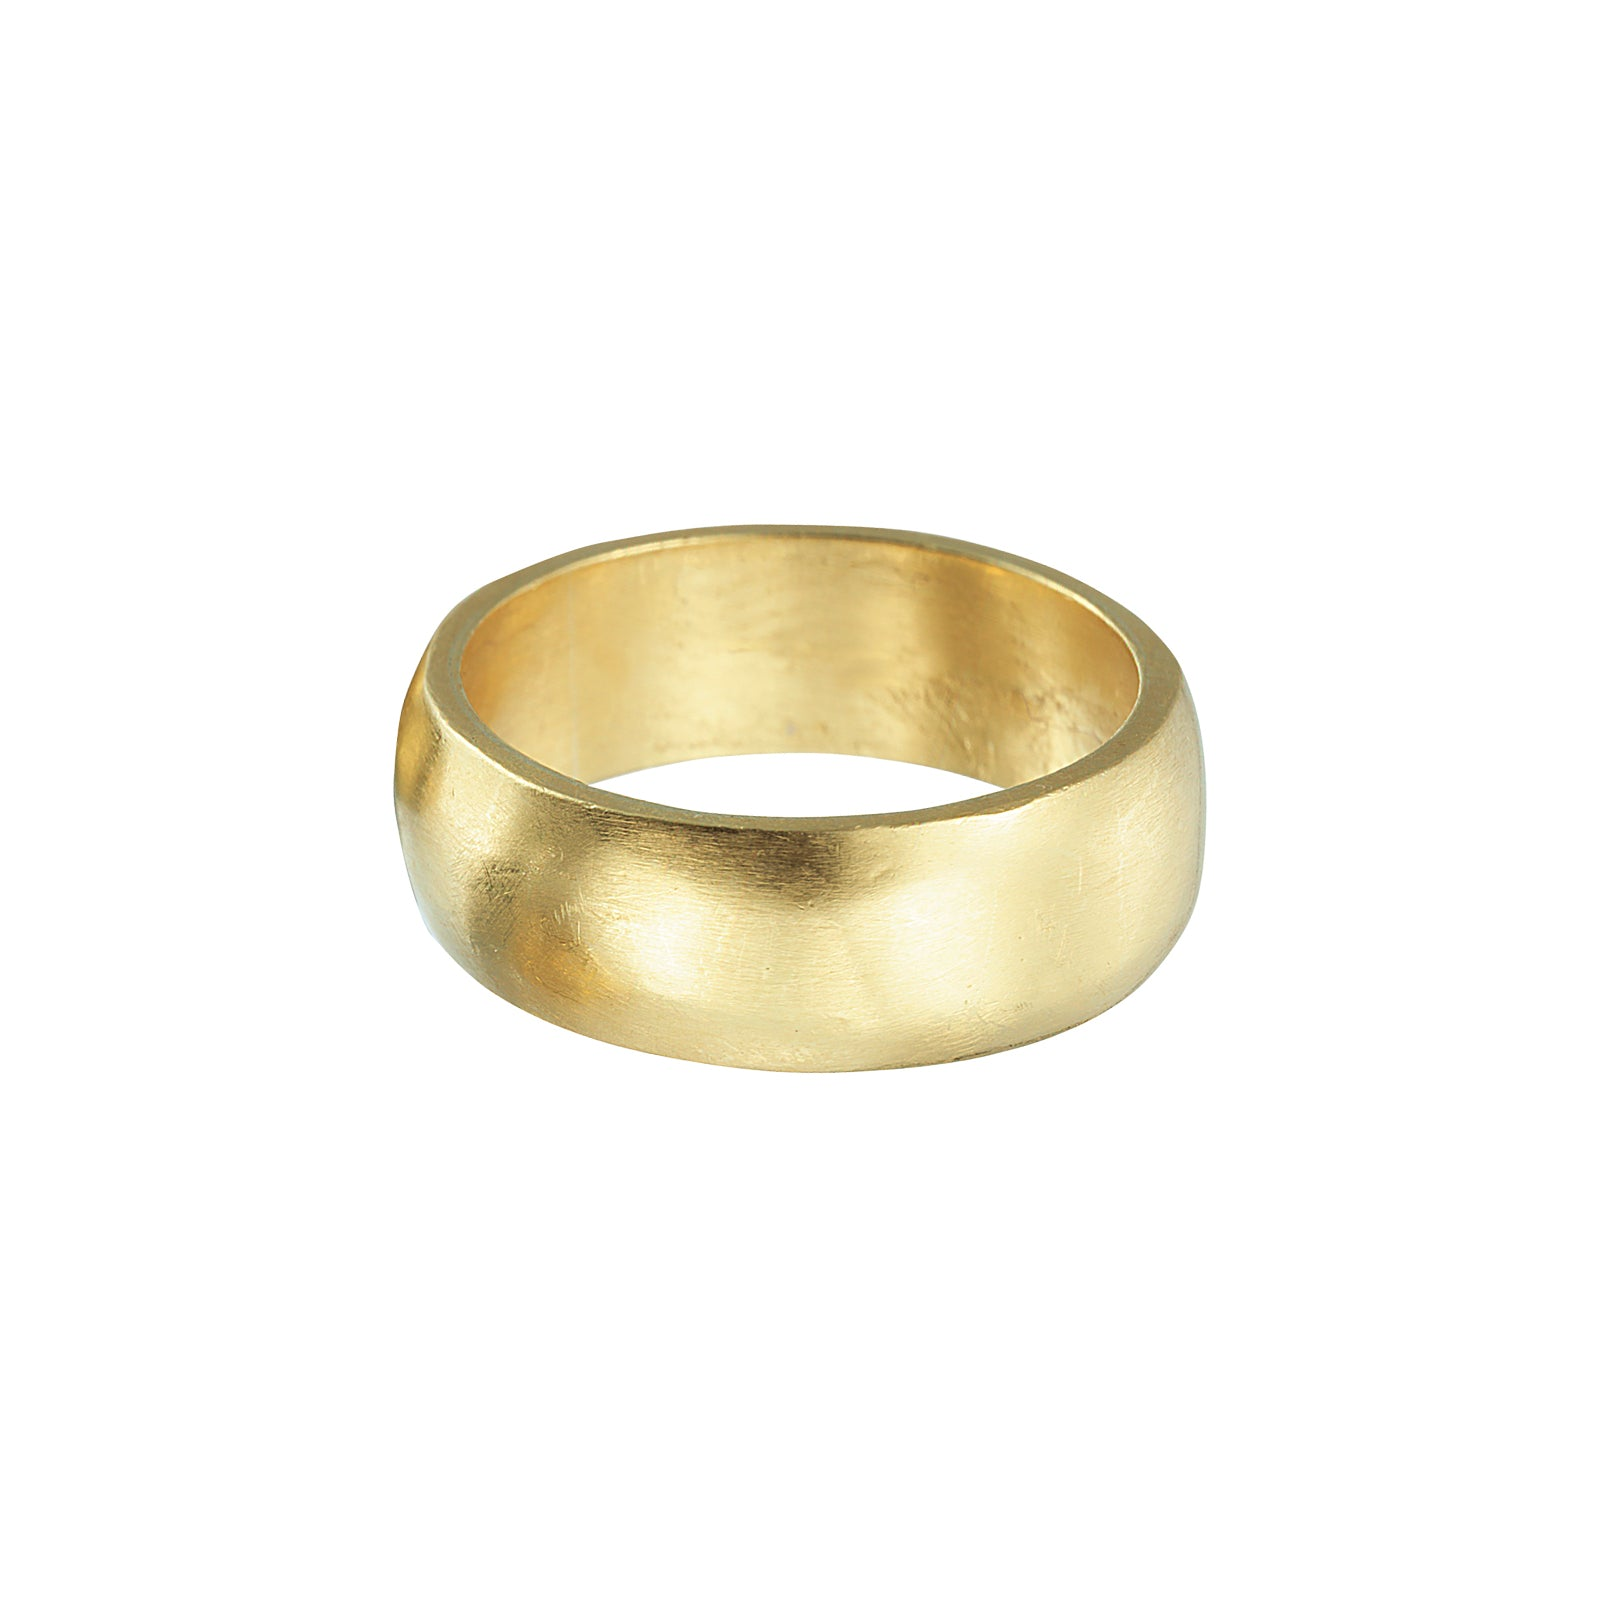 Eli Halili Classic Band Ring - Rings - Broken English Jewelry